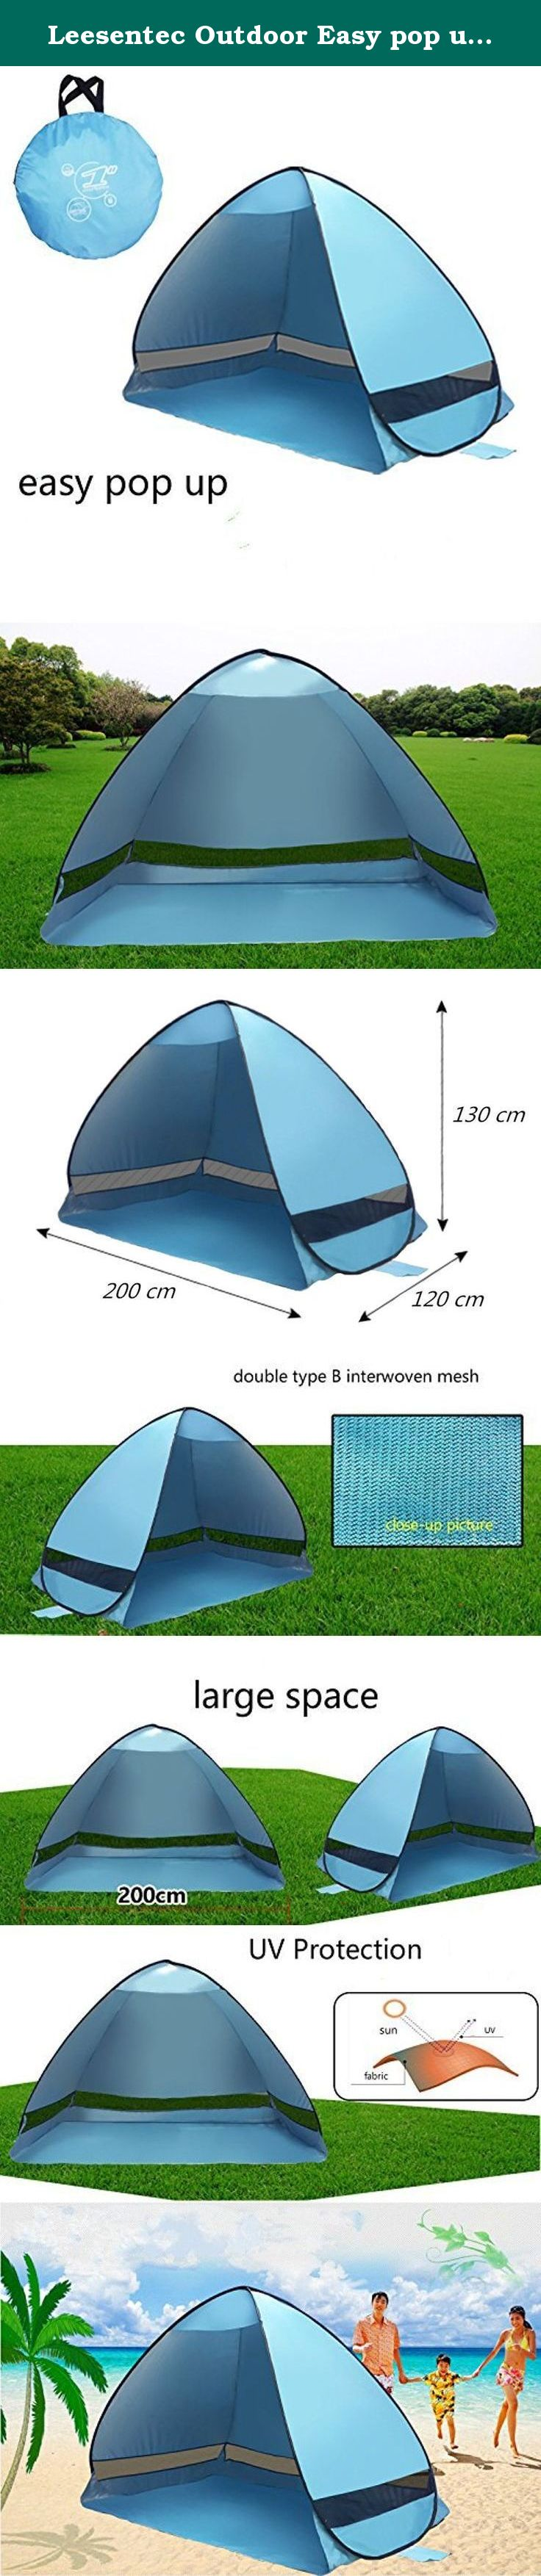 Leesentec Outdoor Easy pop up Beach Tent Portable Cabana Sun Shade Protective Anti Uv Sport Shelter  sc 1 st  Pinterest : folding pop up beach tent - memphite.com